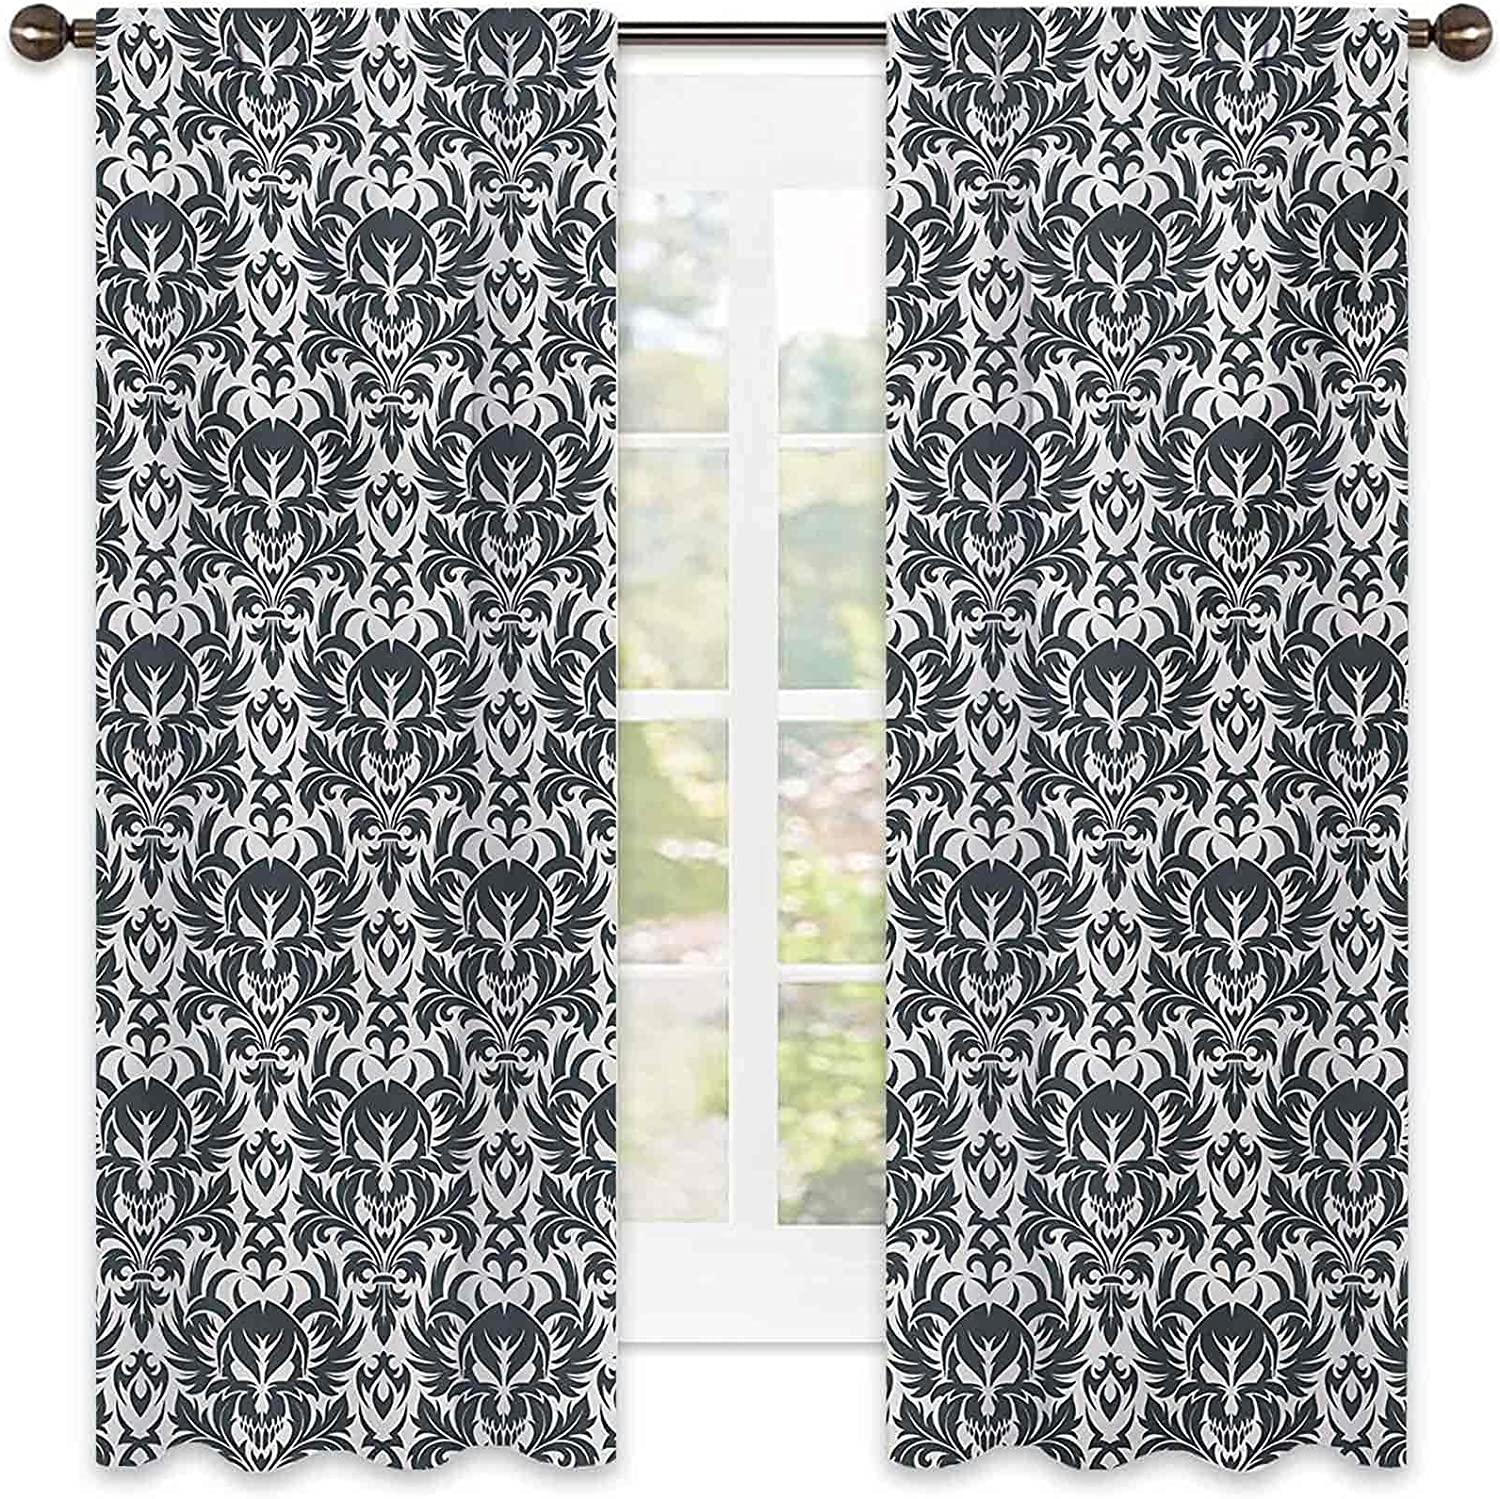 Gothic Shading Insulated Super popular specialty store Curtain Ornamental Damask Flo Ranking TOP17 Inspired